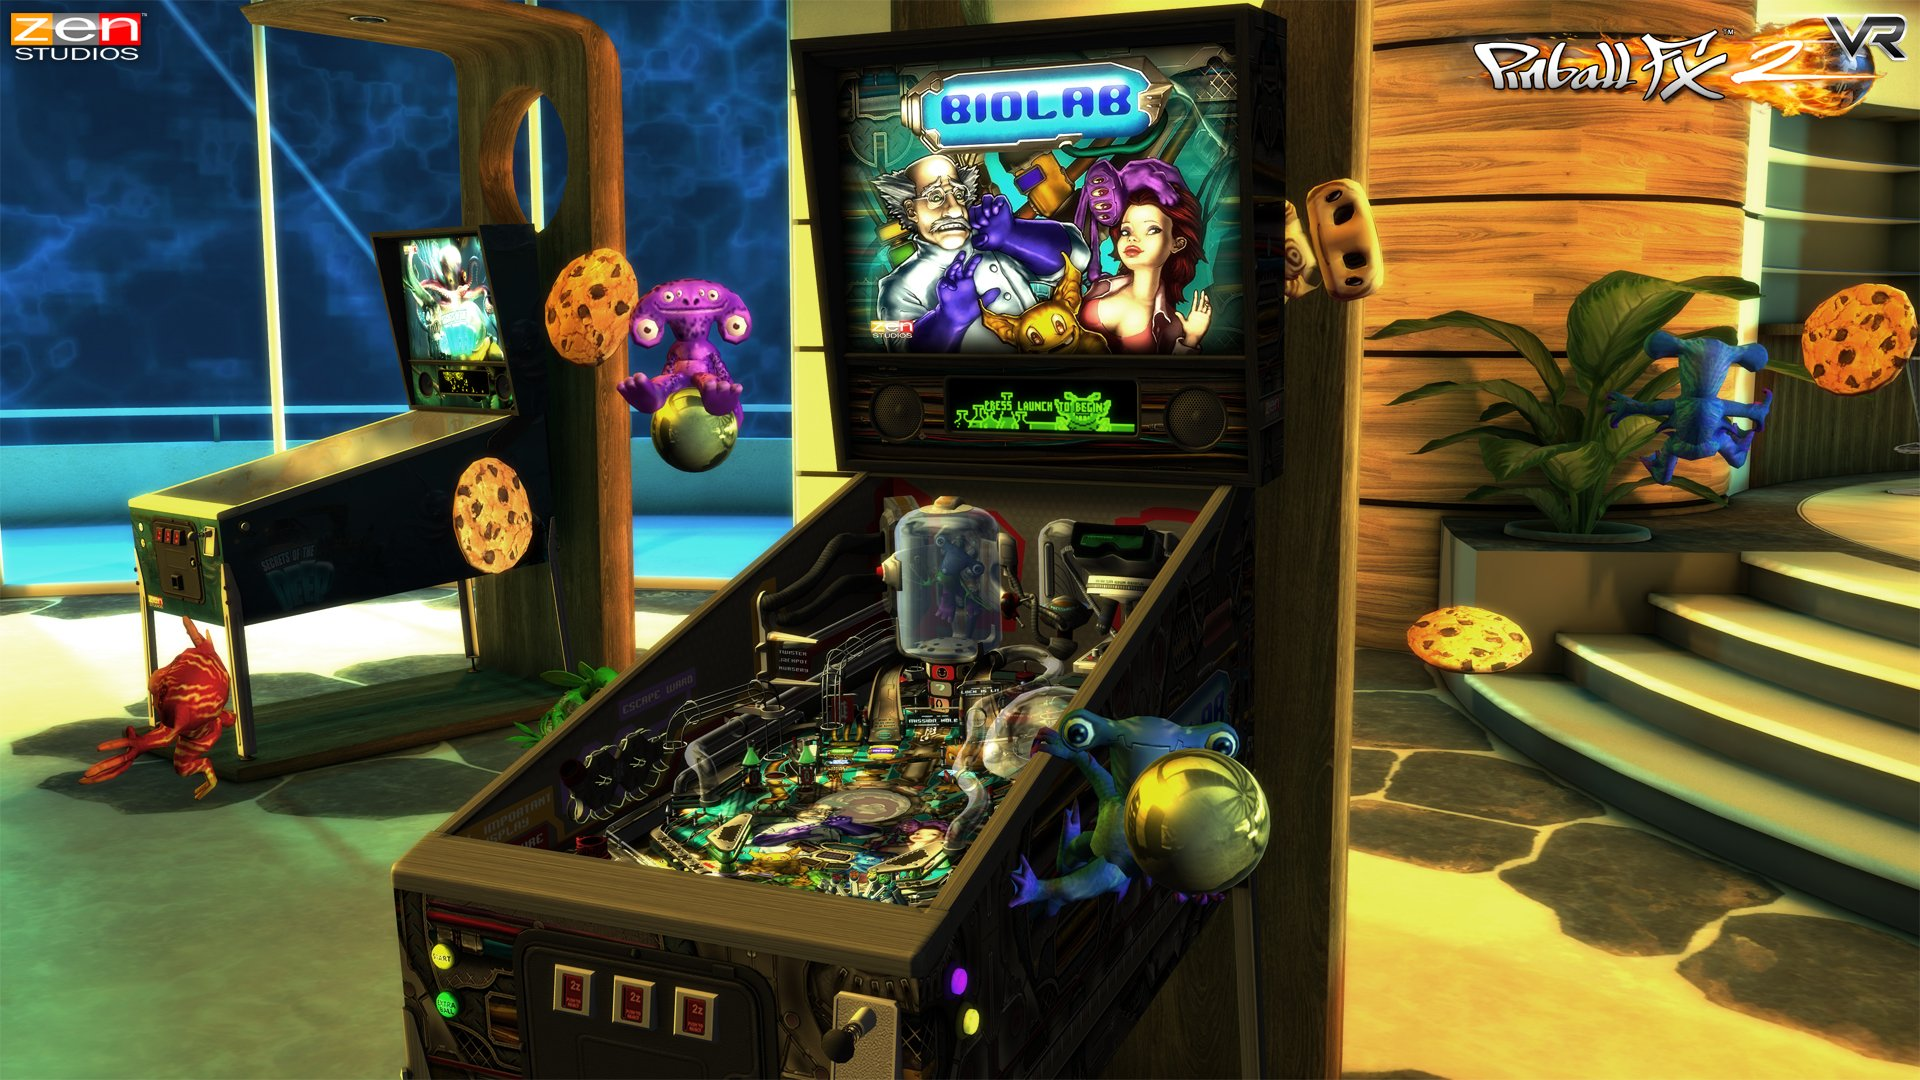 Pinball_FX2_VR_gear_vr_screenshot_Biolab